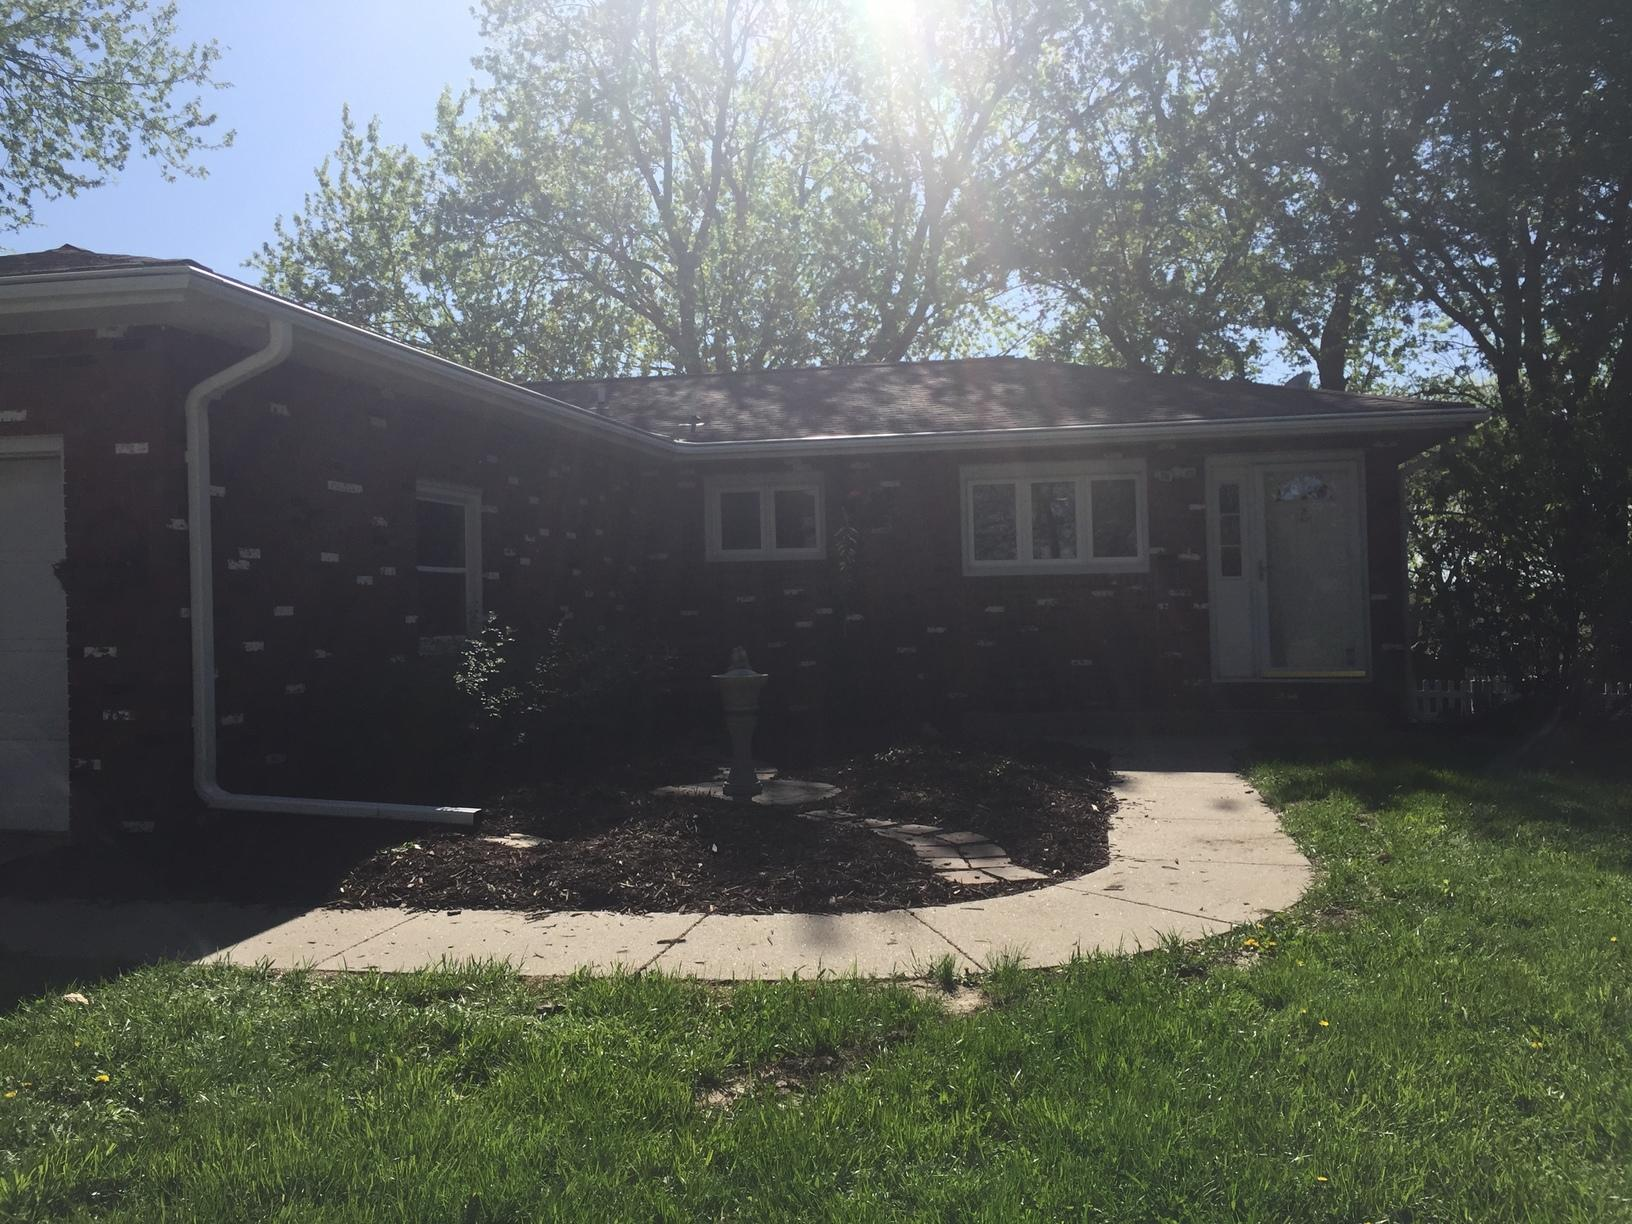 Clogged Gutters Replaced on Brick Home in Glenwood, IA - After Photo